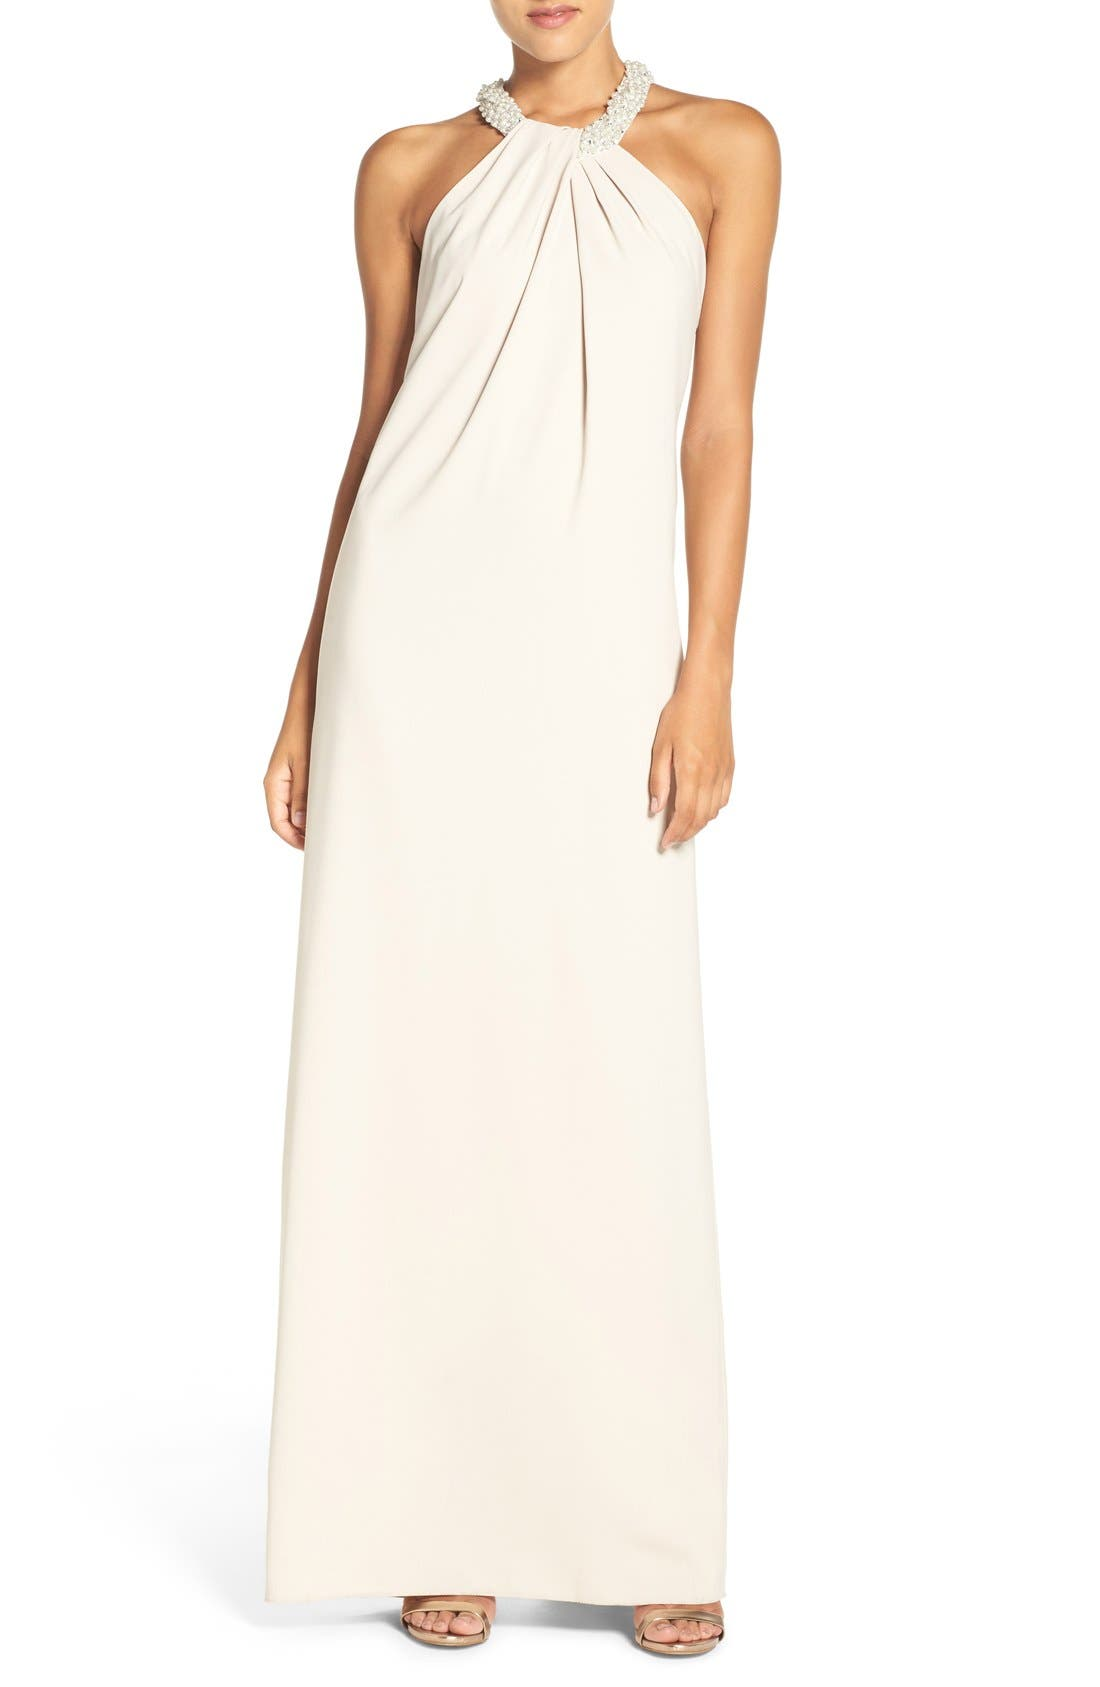 Main Image - Dessy Collection Beaded Halter Neck Crepe Gown